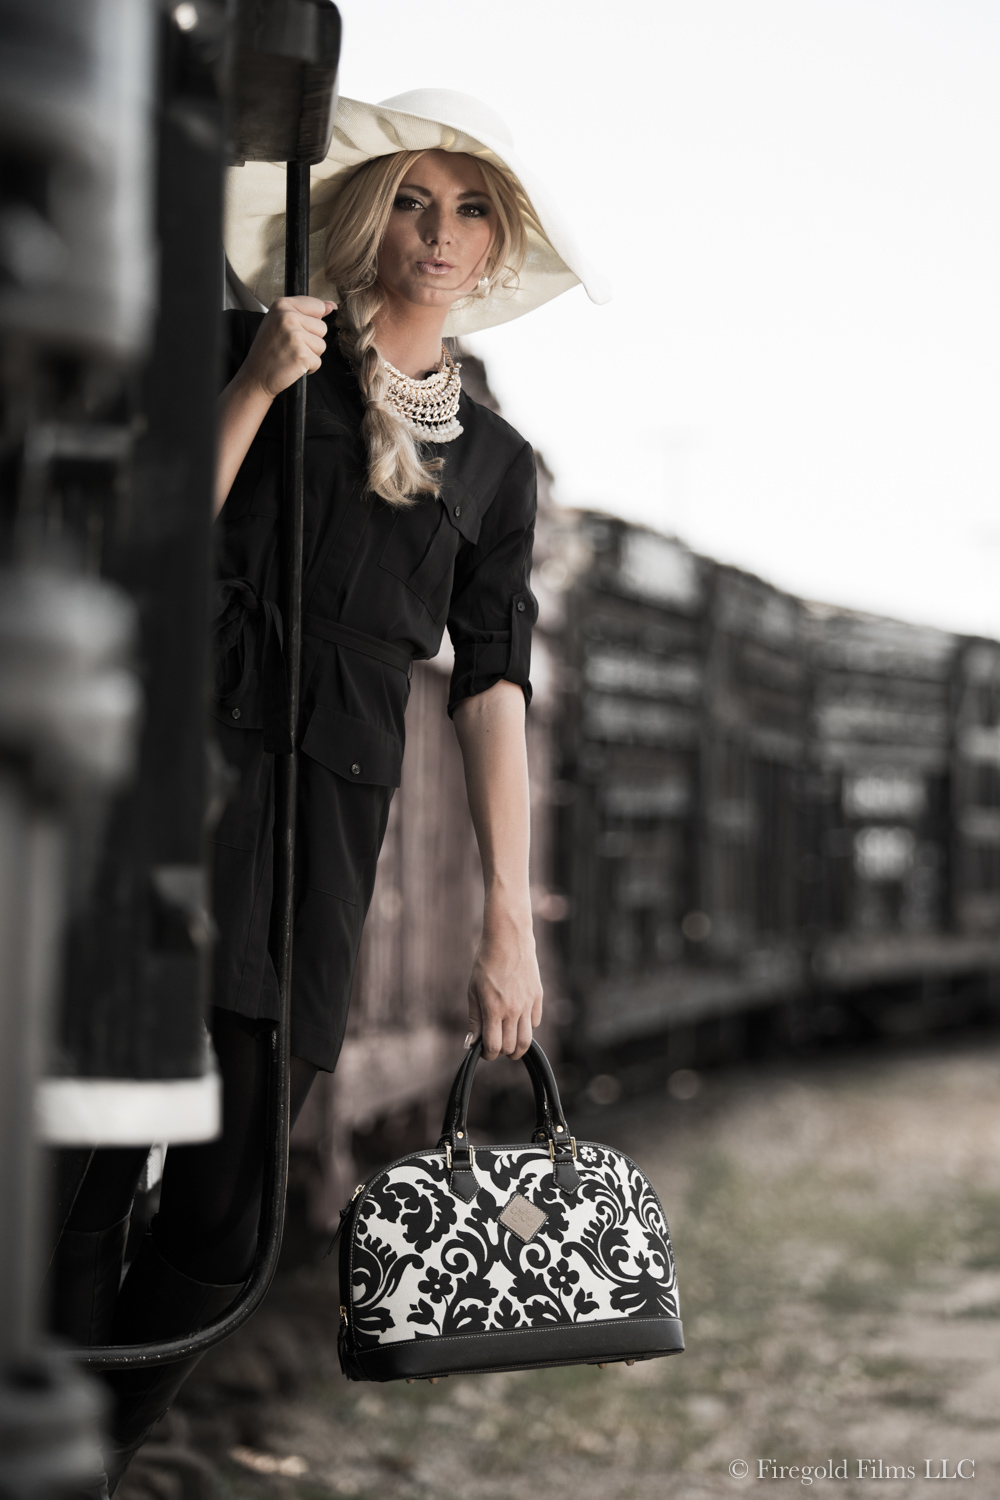 girl-on-locomotive